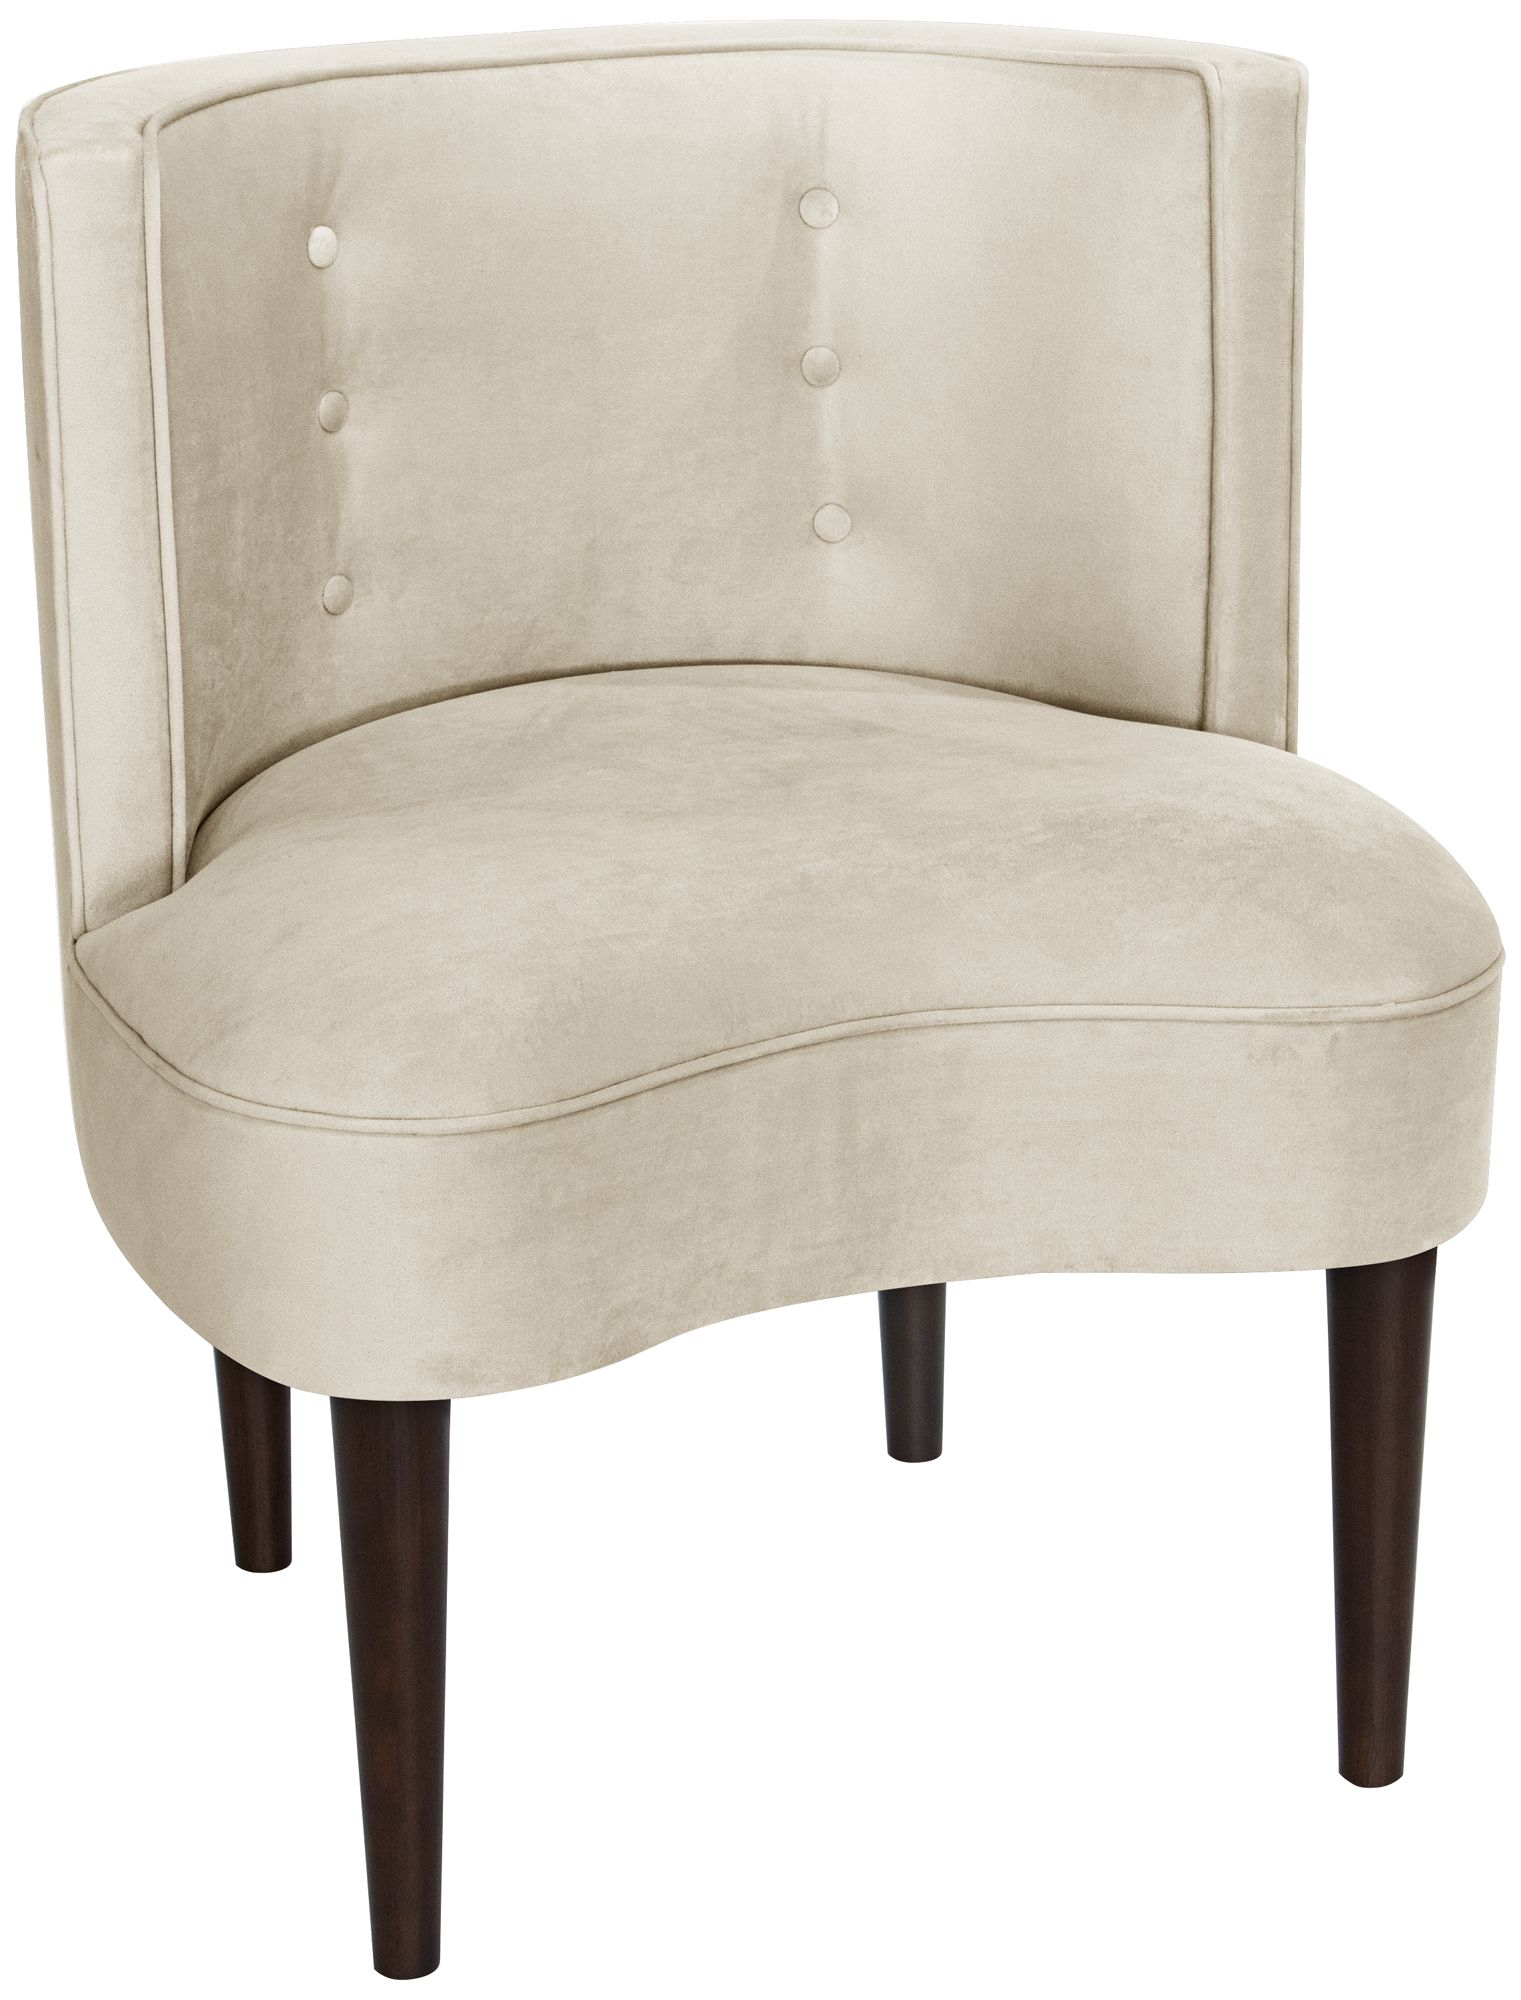 Curve Ball Regal Antique White Fabric Armless Accent Chair   #12R83 | Lamps  Plus